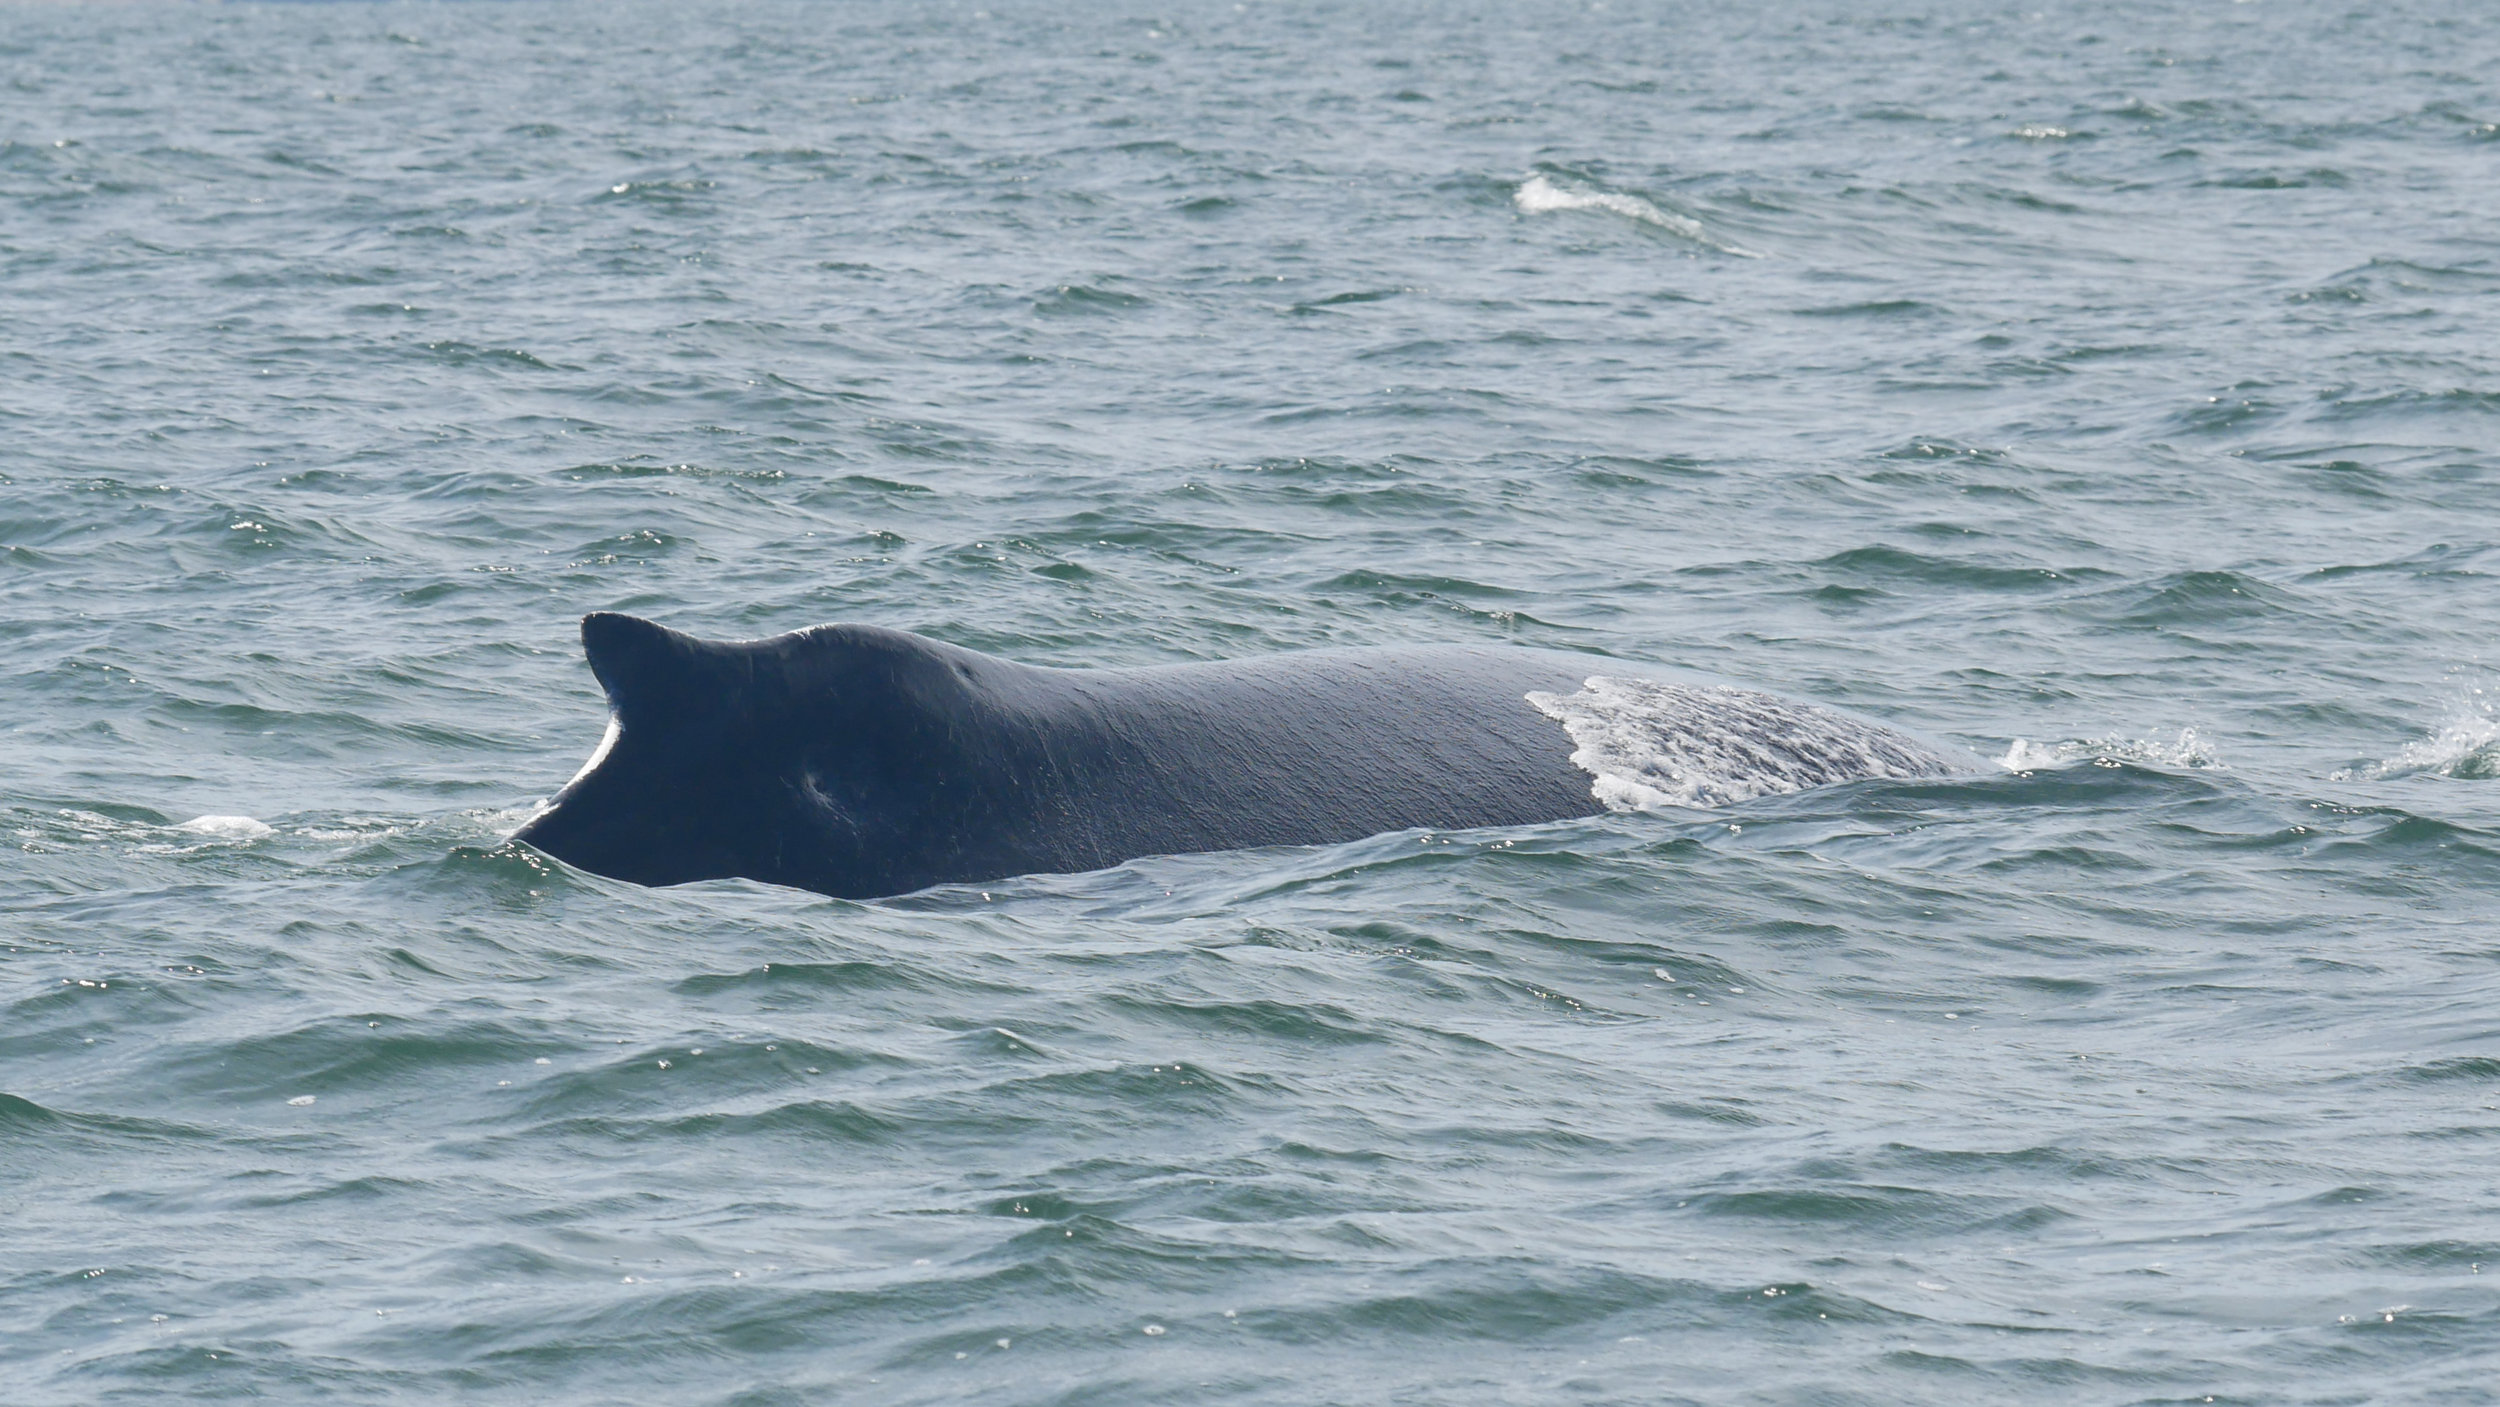 A humpback showing off their namesake! Such funny little dorsal fins. Photo by Rebeka Pirker.